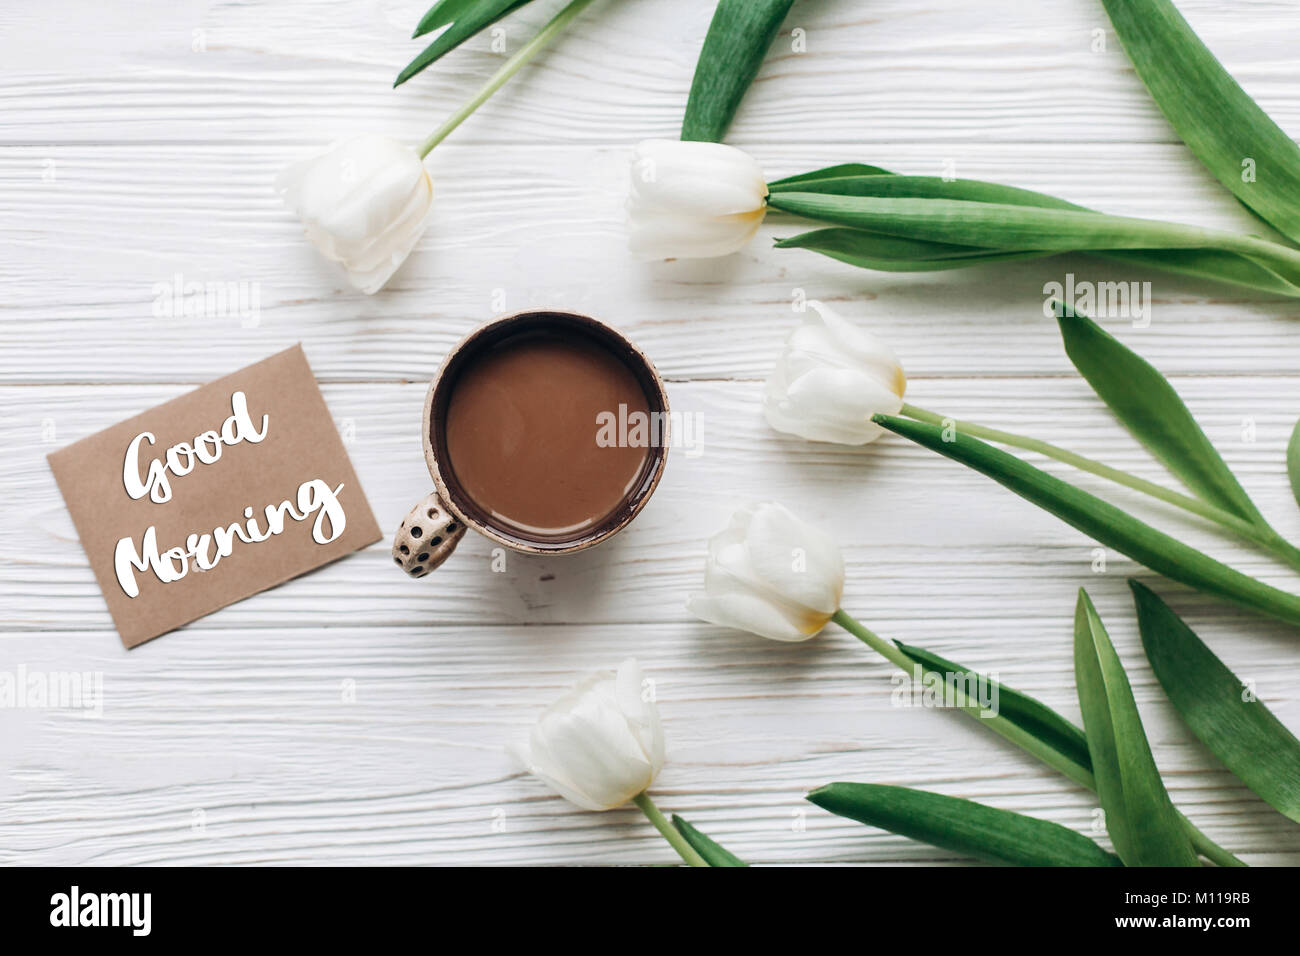 Good Morning With Flowers Stock Photos Good Morning With Flowers